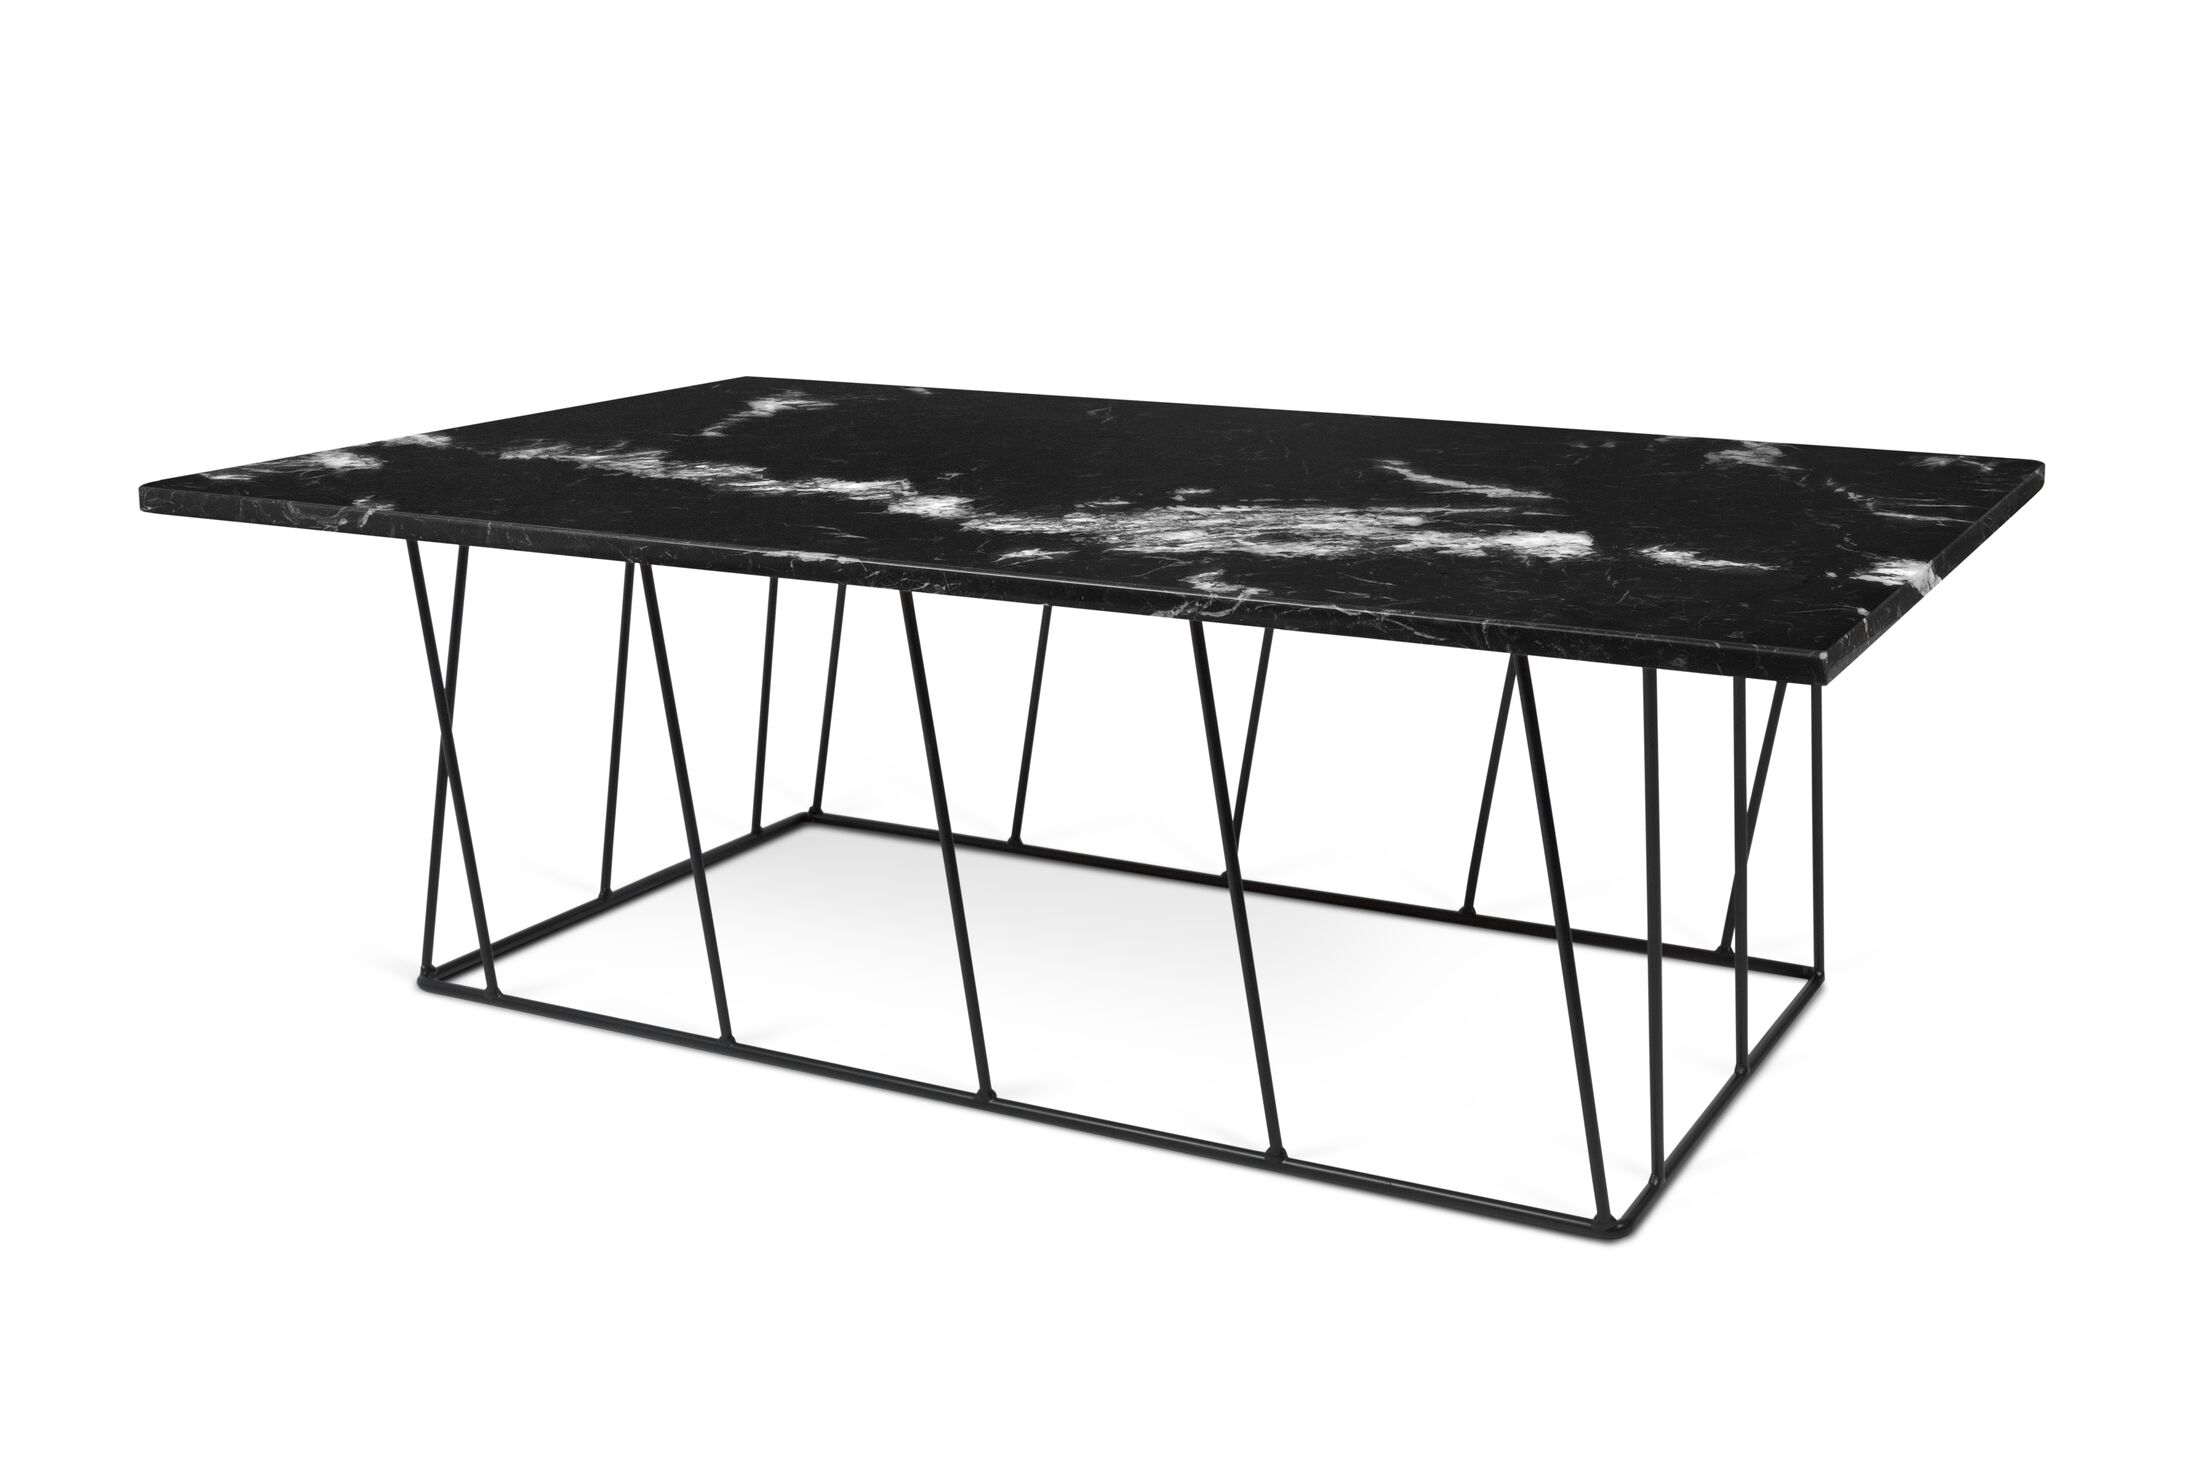 Sligh Coffee Table with Magazine Rack Top Color: Black Marble, Base Color: Black Lacquered Steel